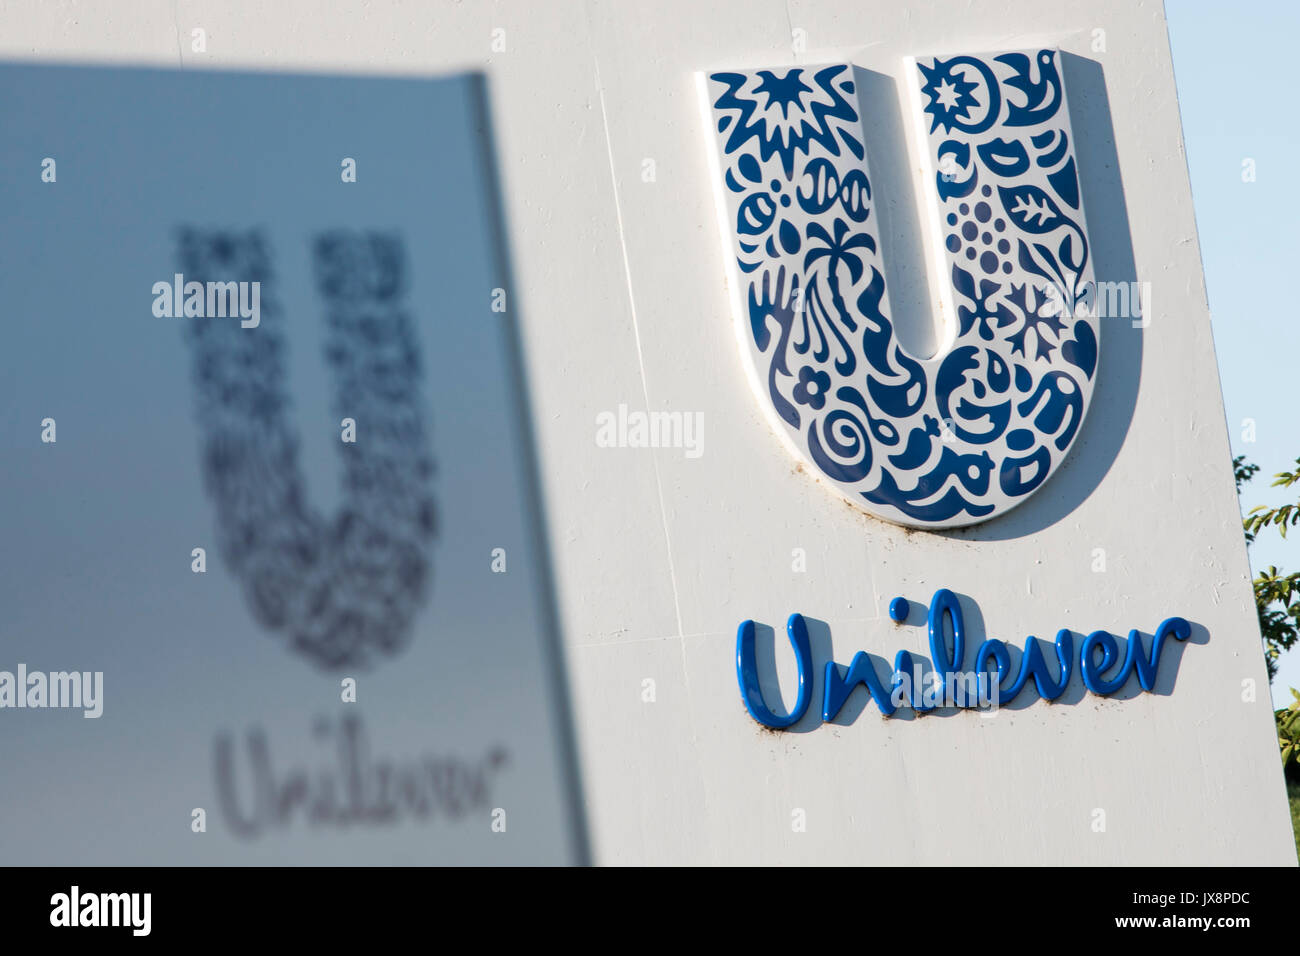 Unilever building stock photos unilever building stock images a logo sign outside of a facility occupied by unilever in newville pennsylvania on july biocorpaavc Images